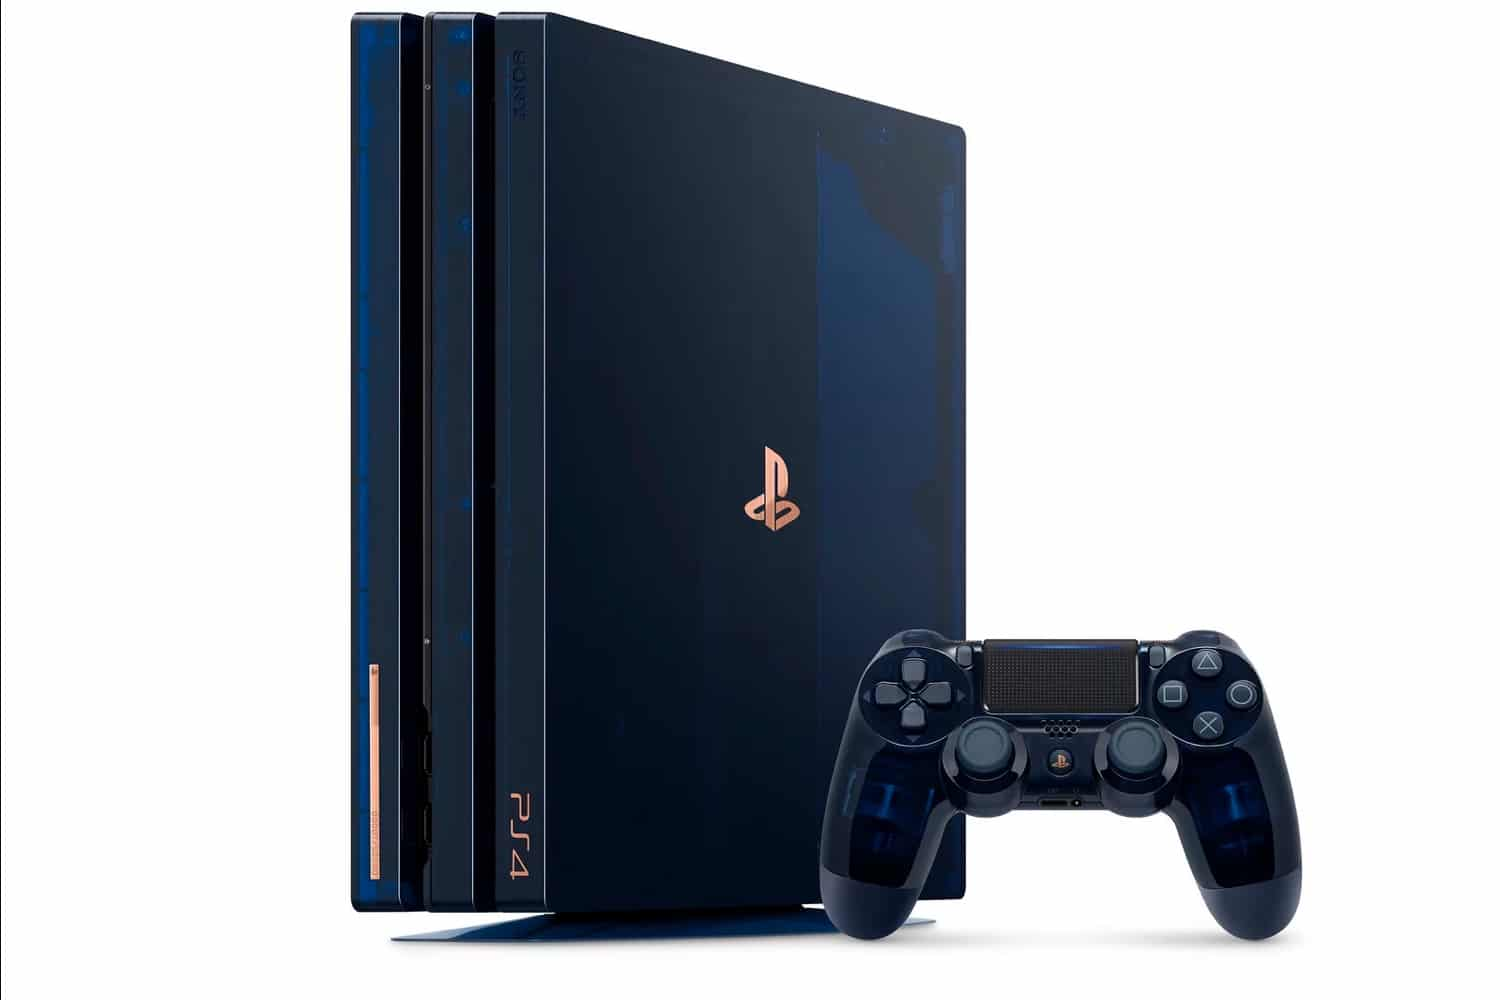 sony d voile une ps4 pro 2to en dition tr s limit e 499 euros. Black Bedroom Furniture Sets. Home Design Ideas